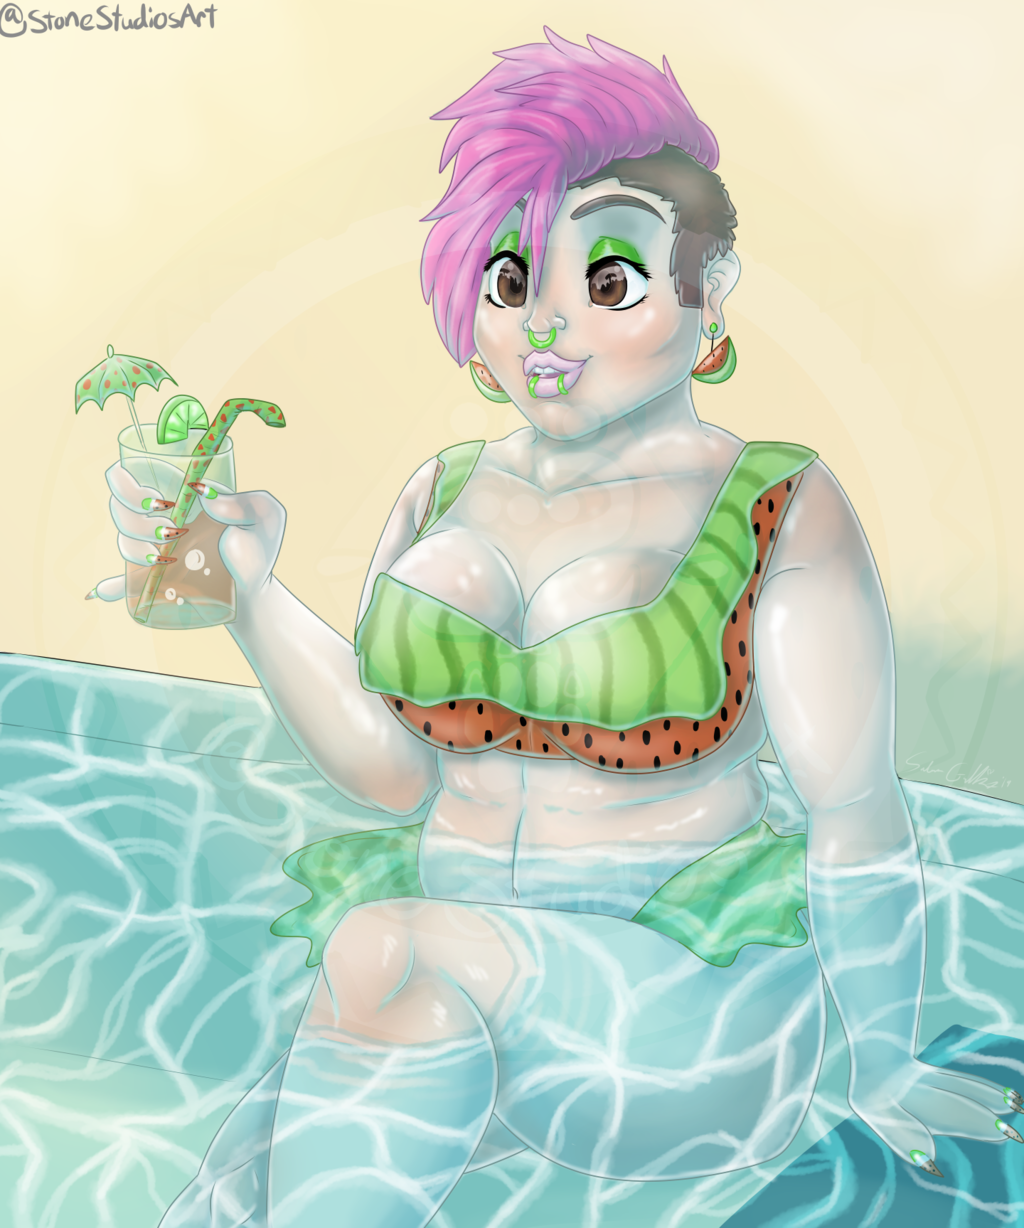 Most recent image: Watermelon Queen - Painting